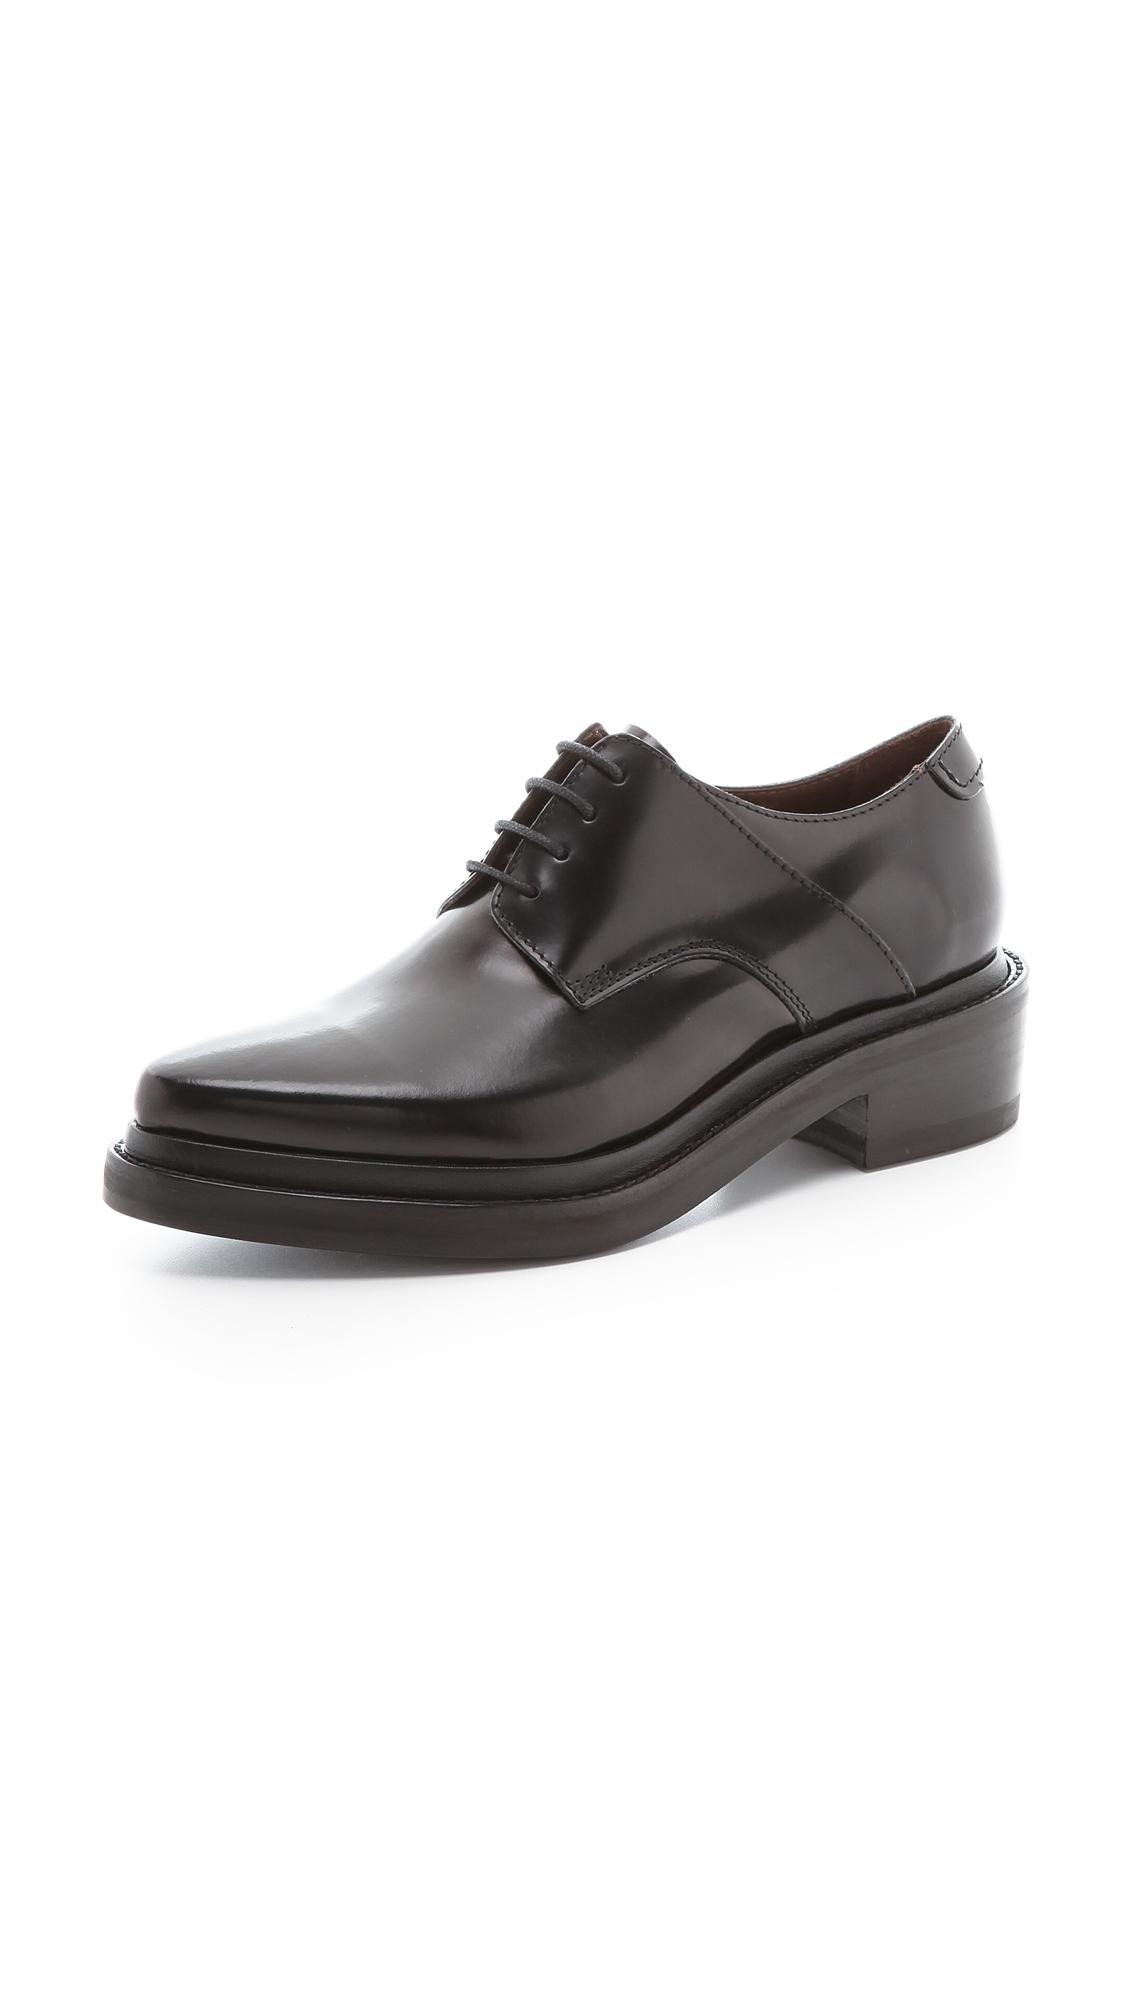 Need these @acnestudios oxfords? Us too: http://t.co/Cio9Xtfdw1 http://t.co/KtXcXP9qox